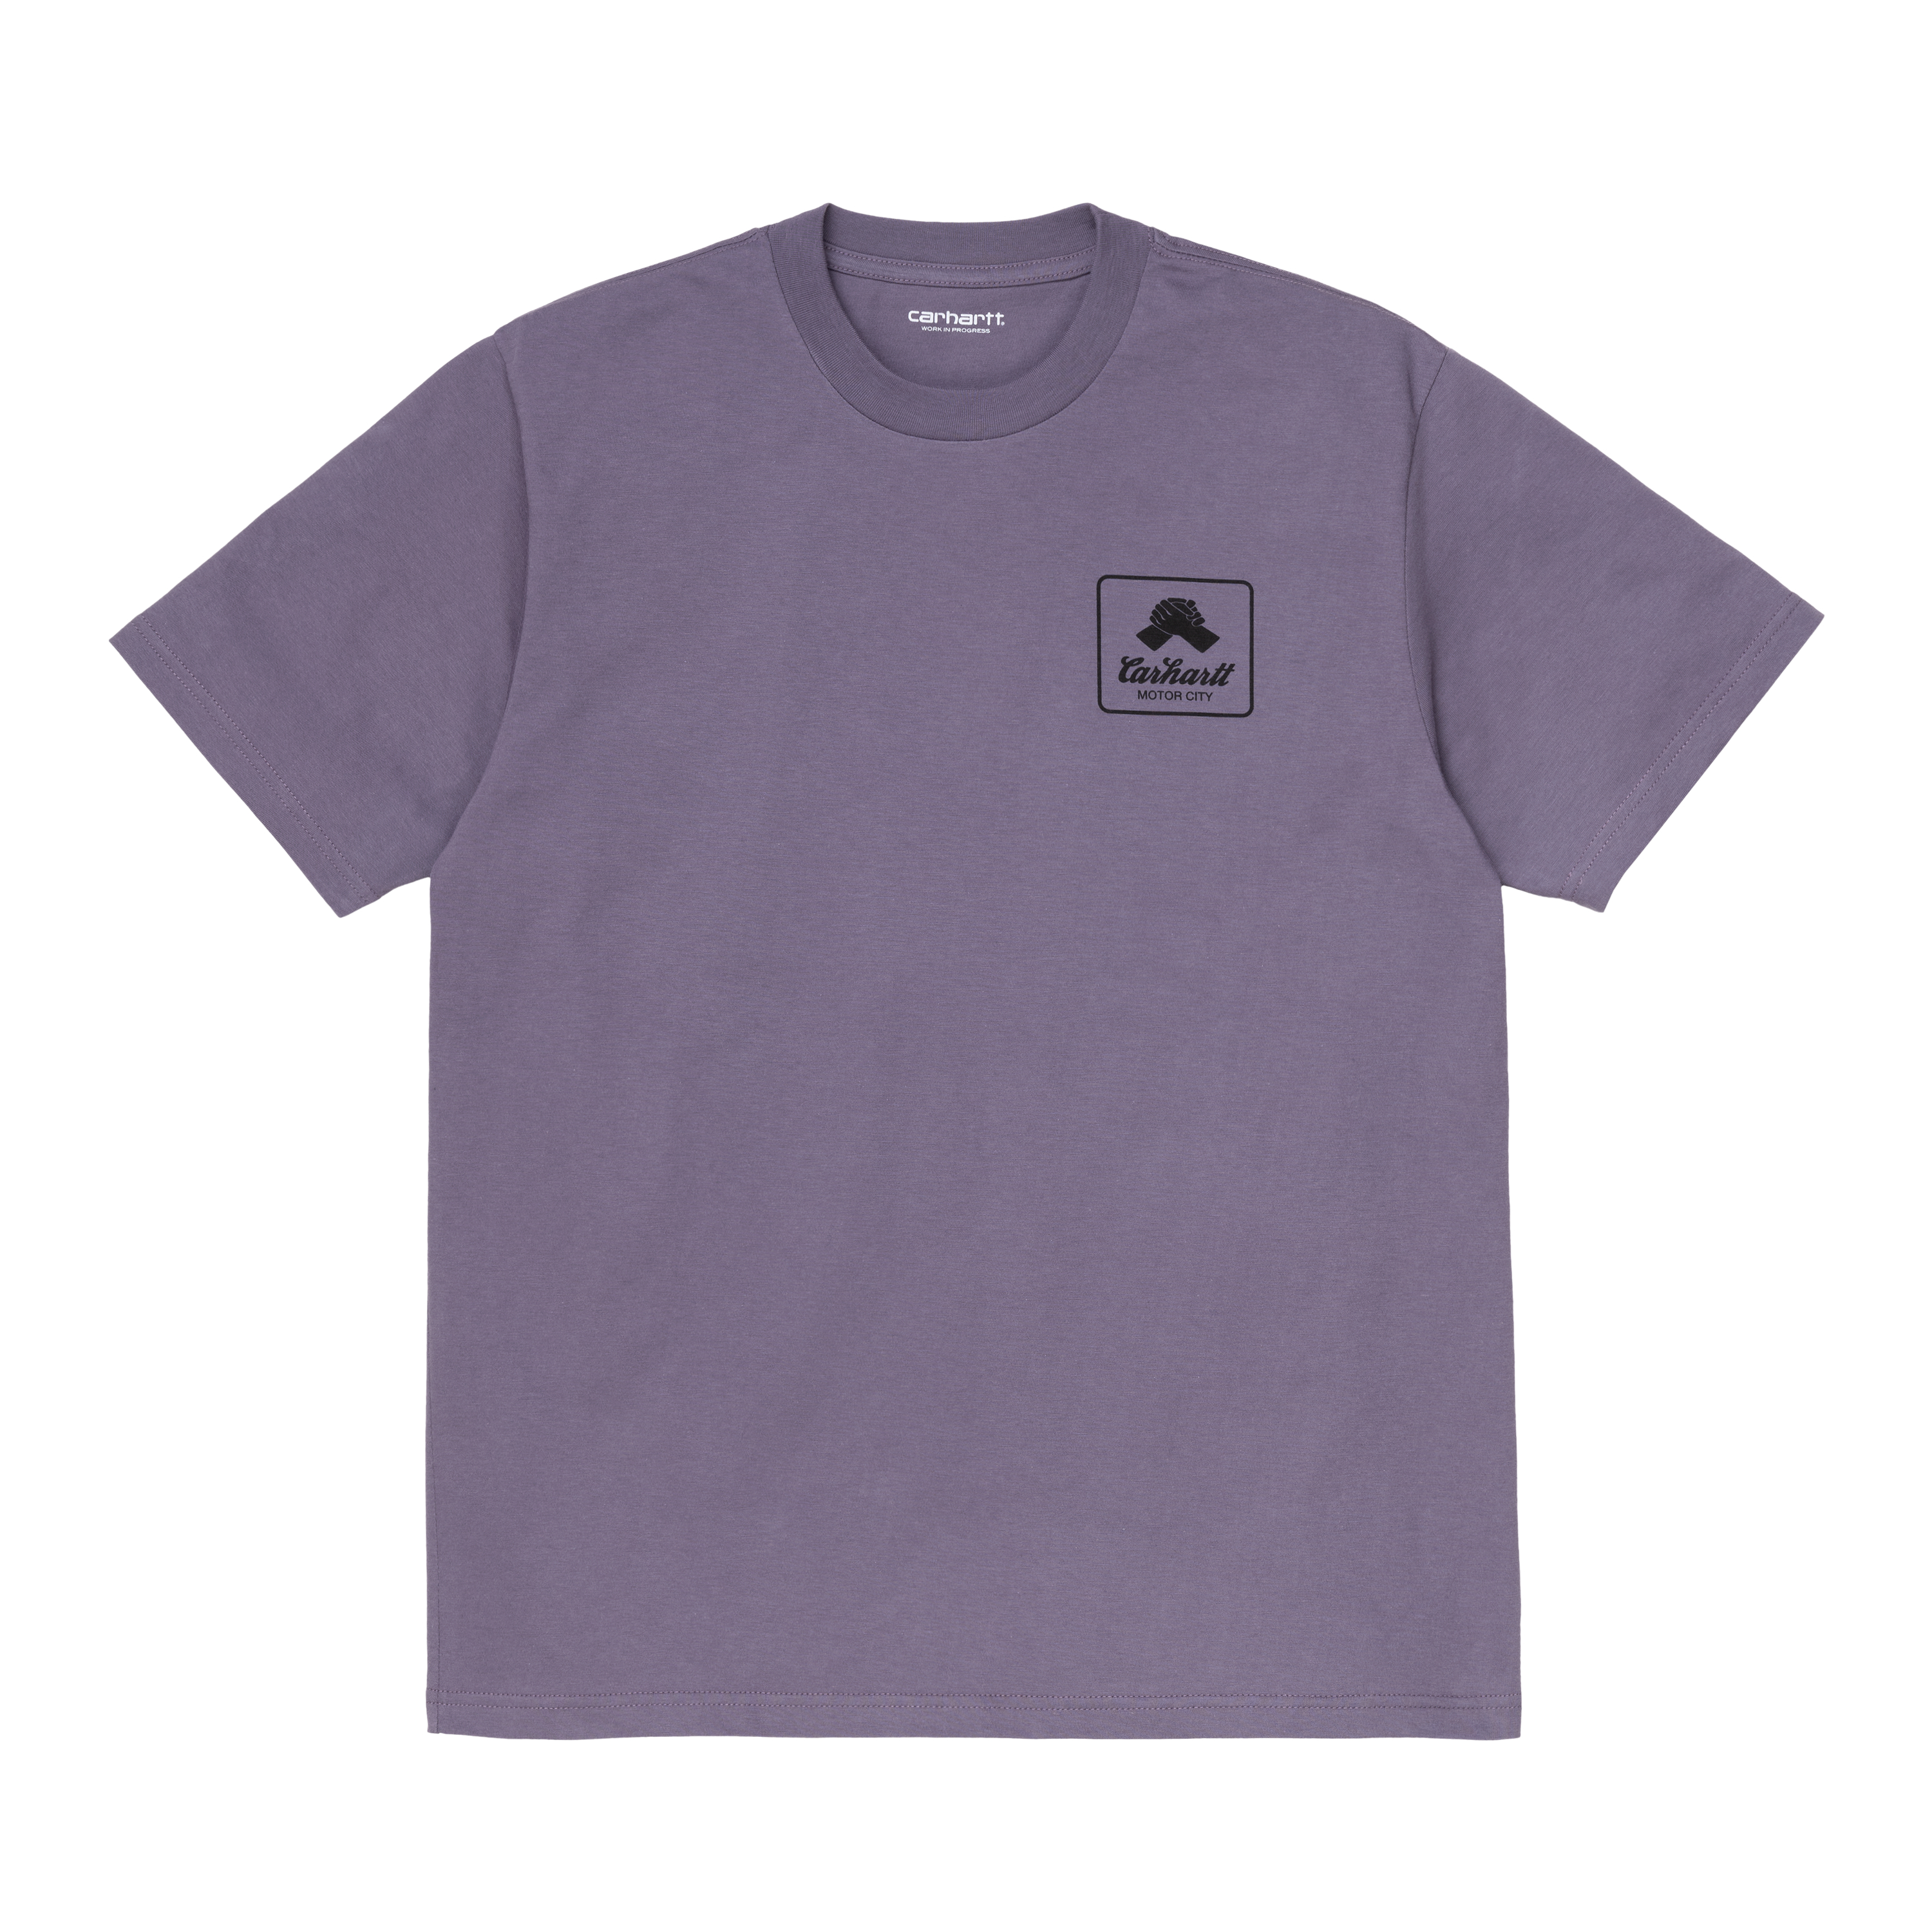 Carhartt S/S Peace State t-shirt, provence, xx-large